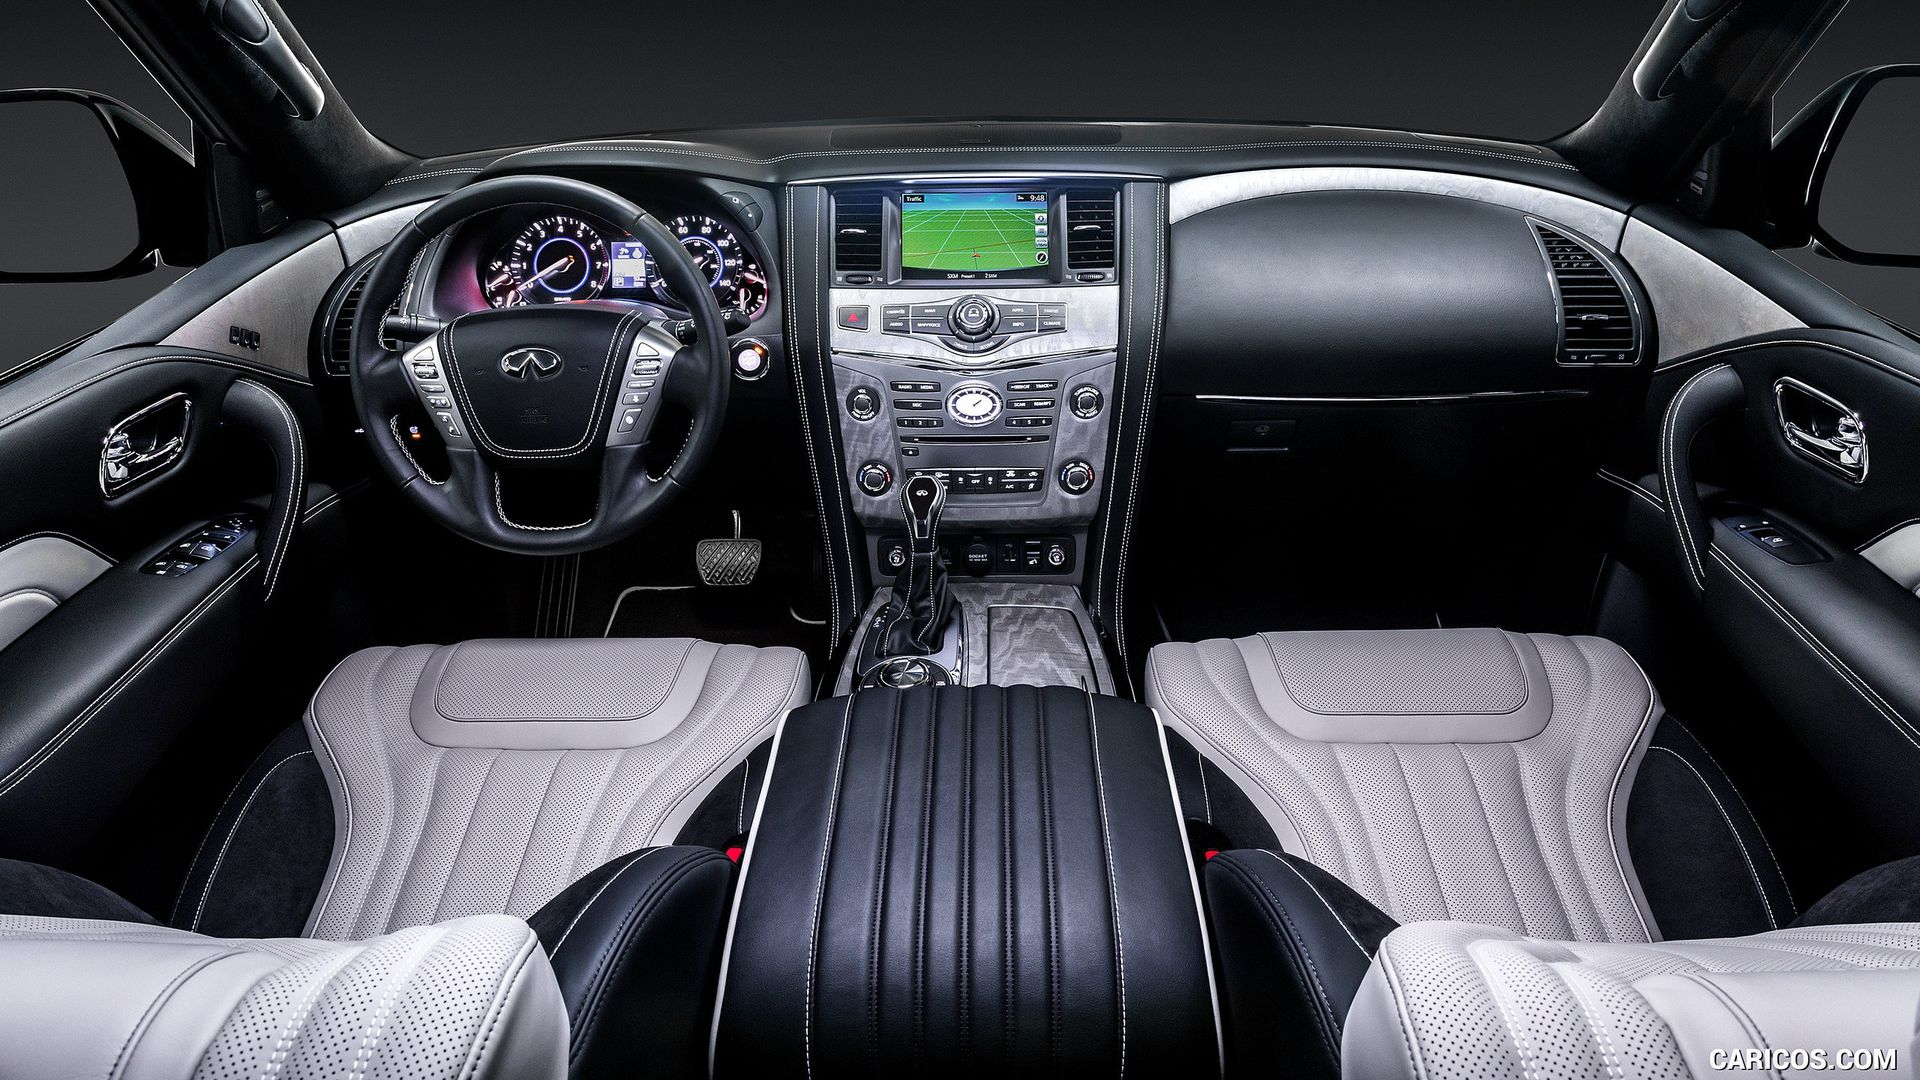 This image shows the black and gray interior of the Infiniti QX80.